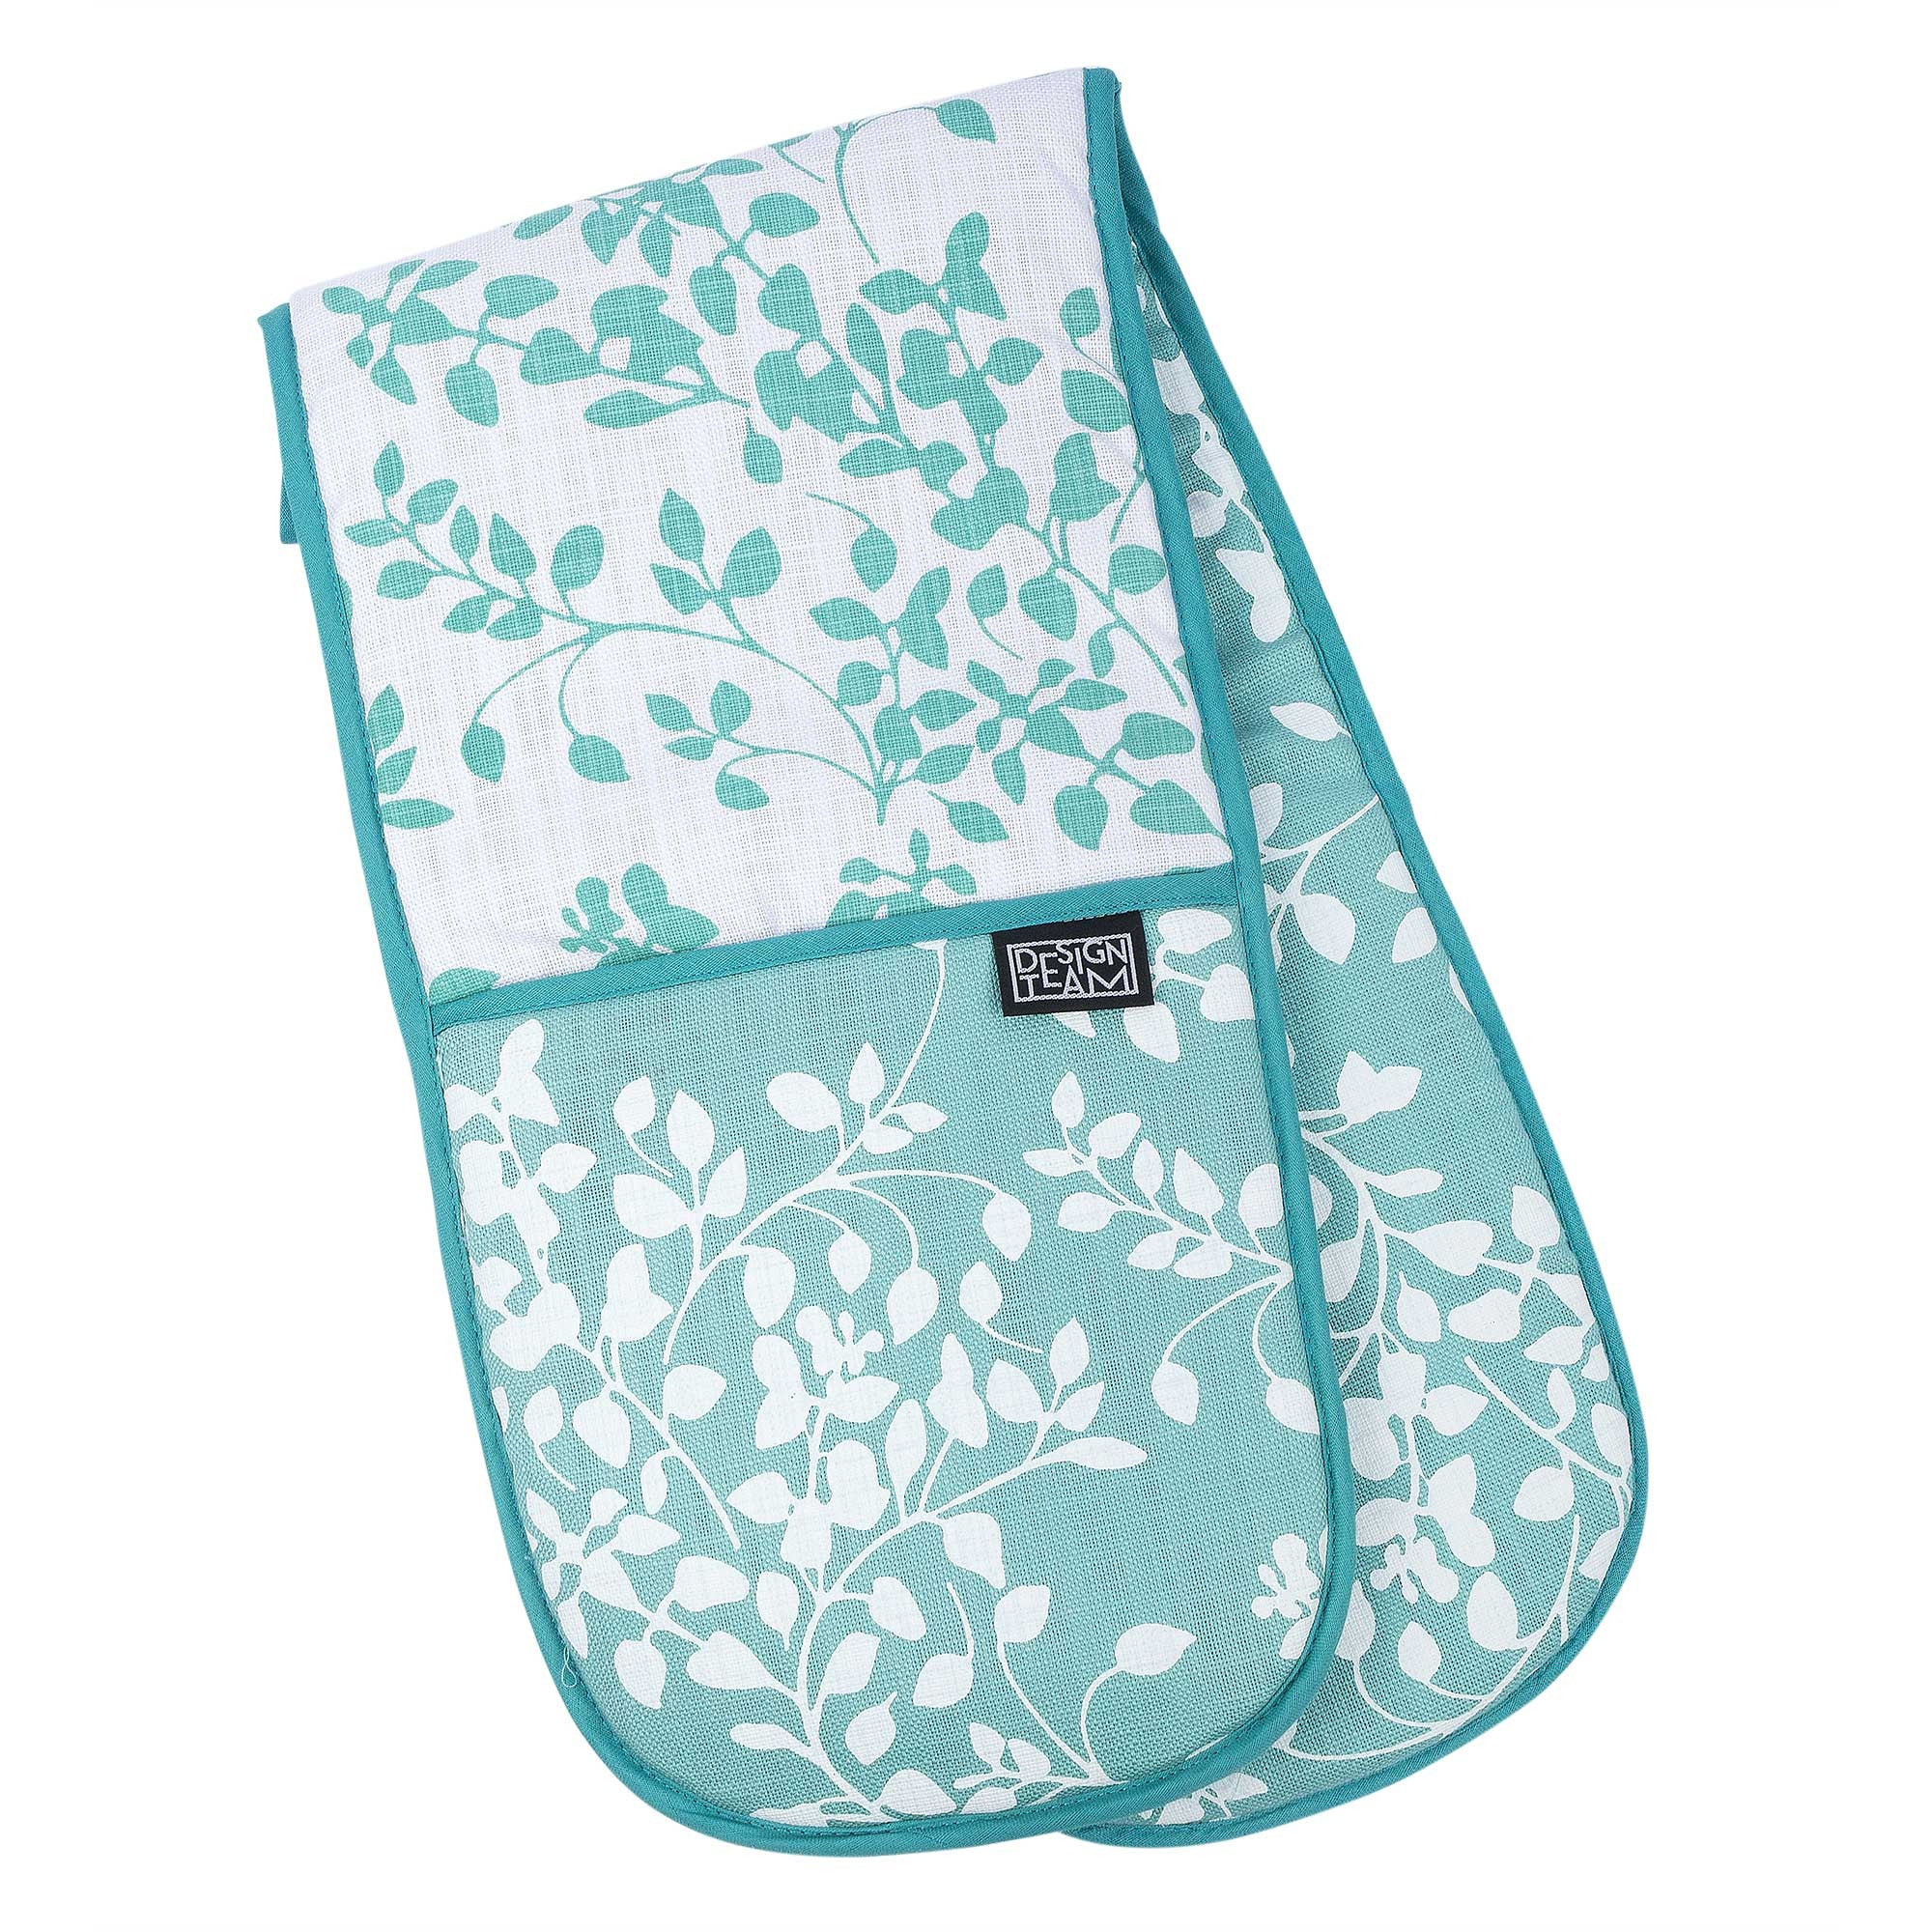 Turquoise leaflet oven gloves